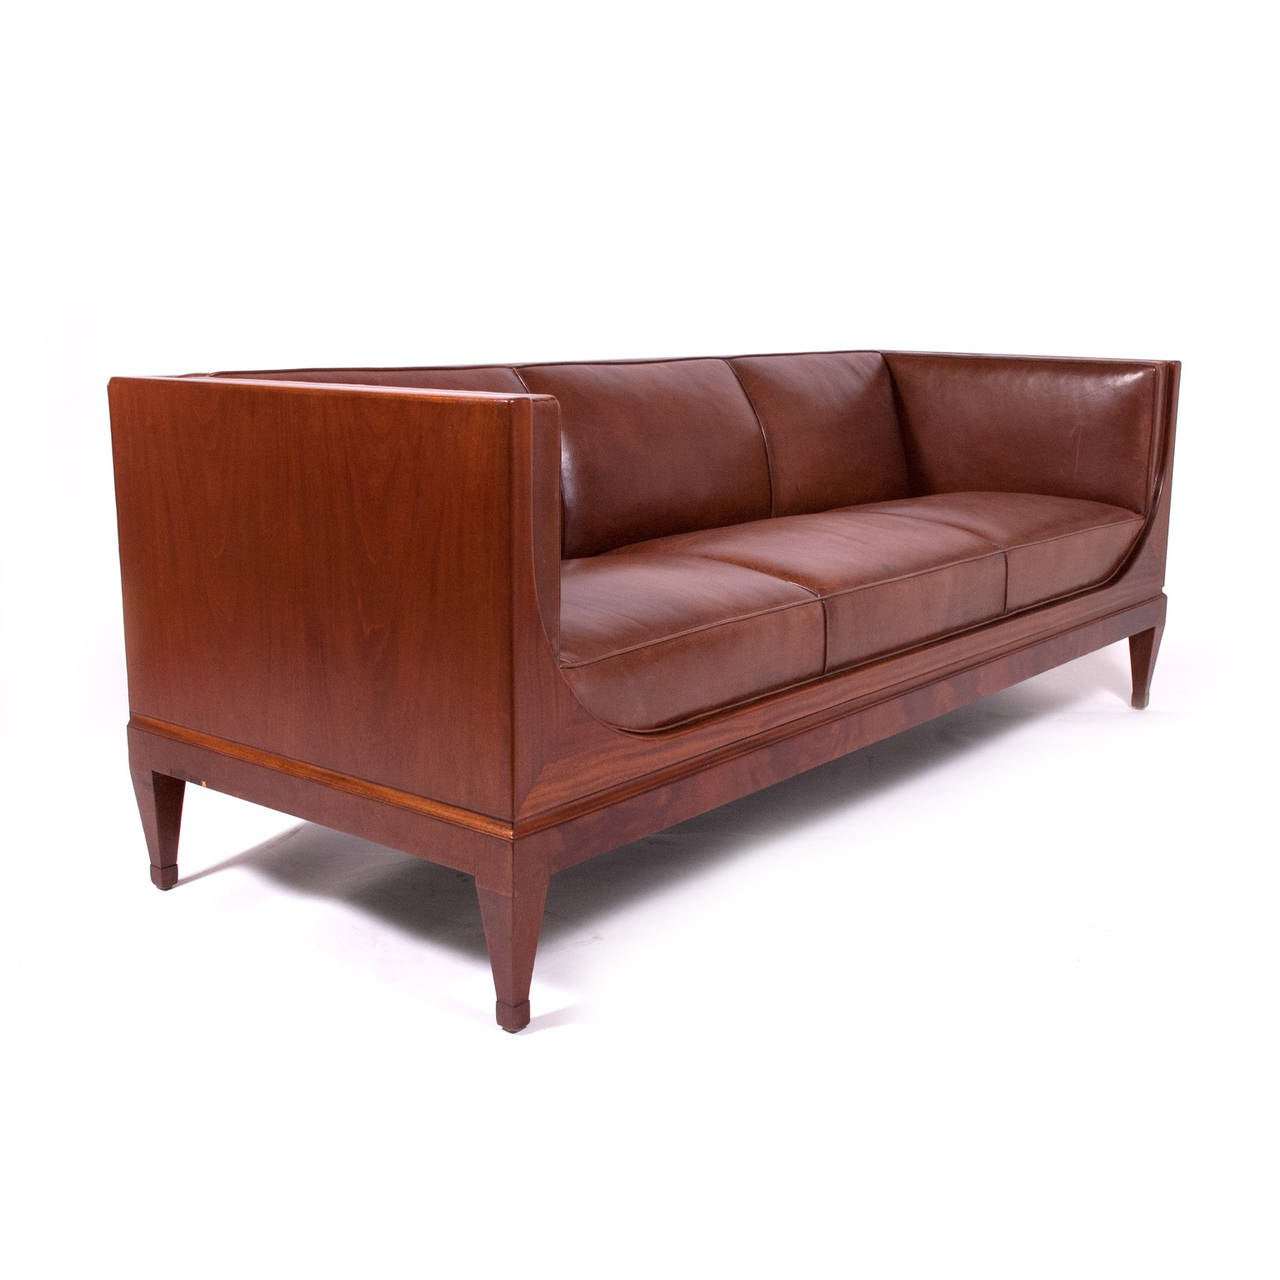 Classic sofa by frits henningsen 1930s for sale at 1stdibs for Classic sofa